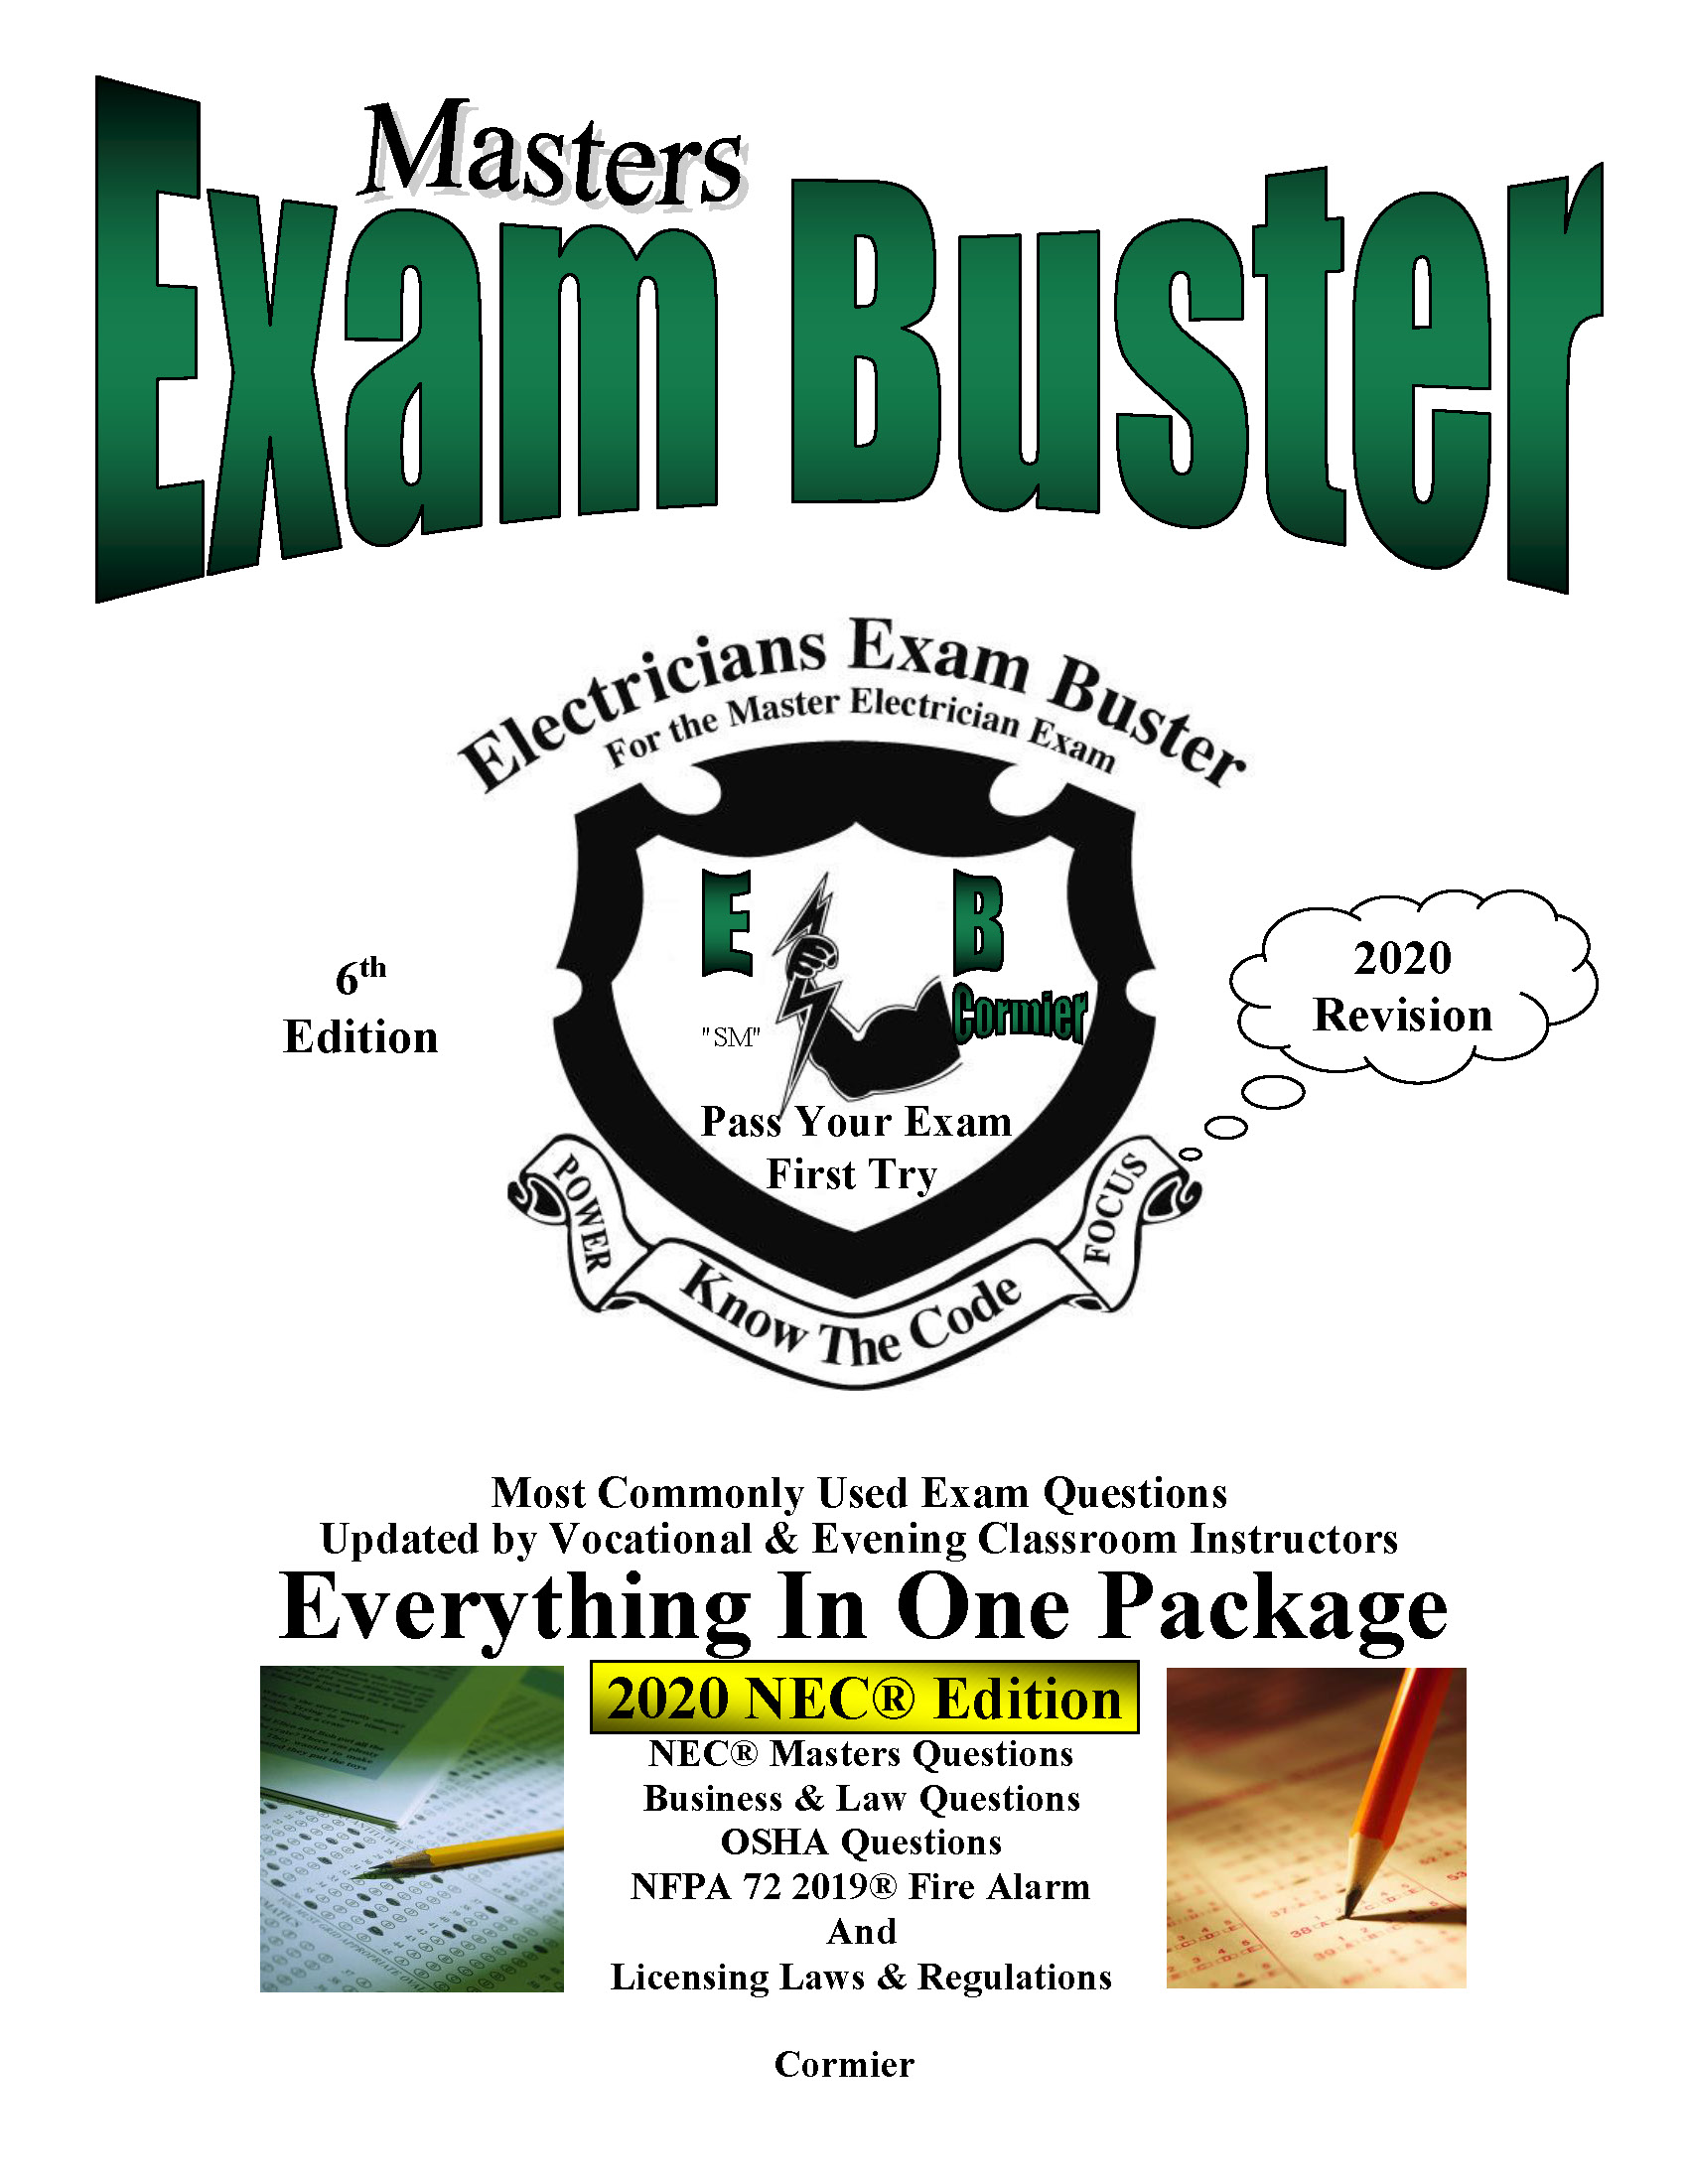 Old exam buster book cover